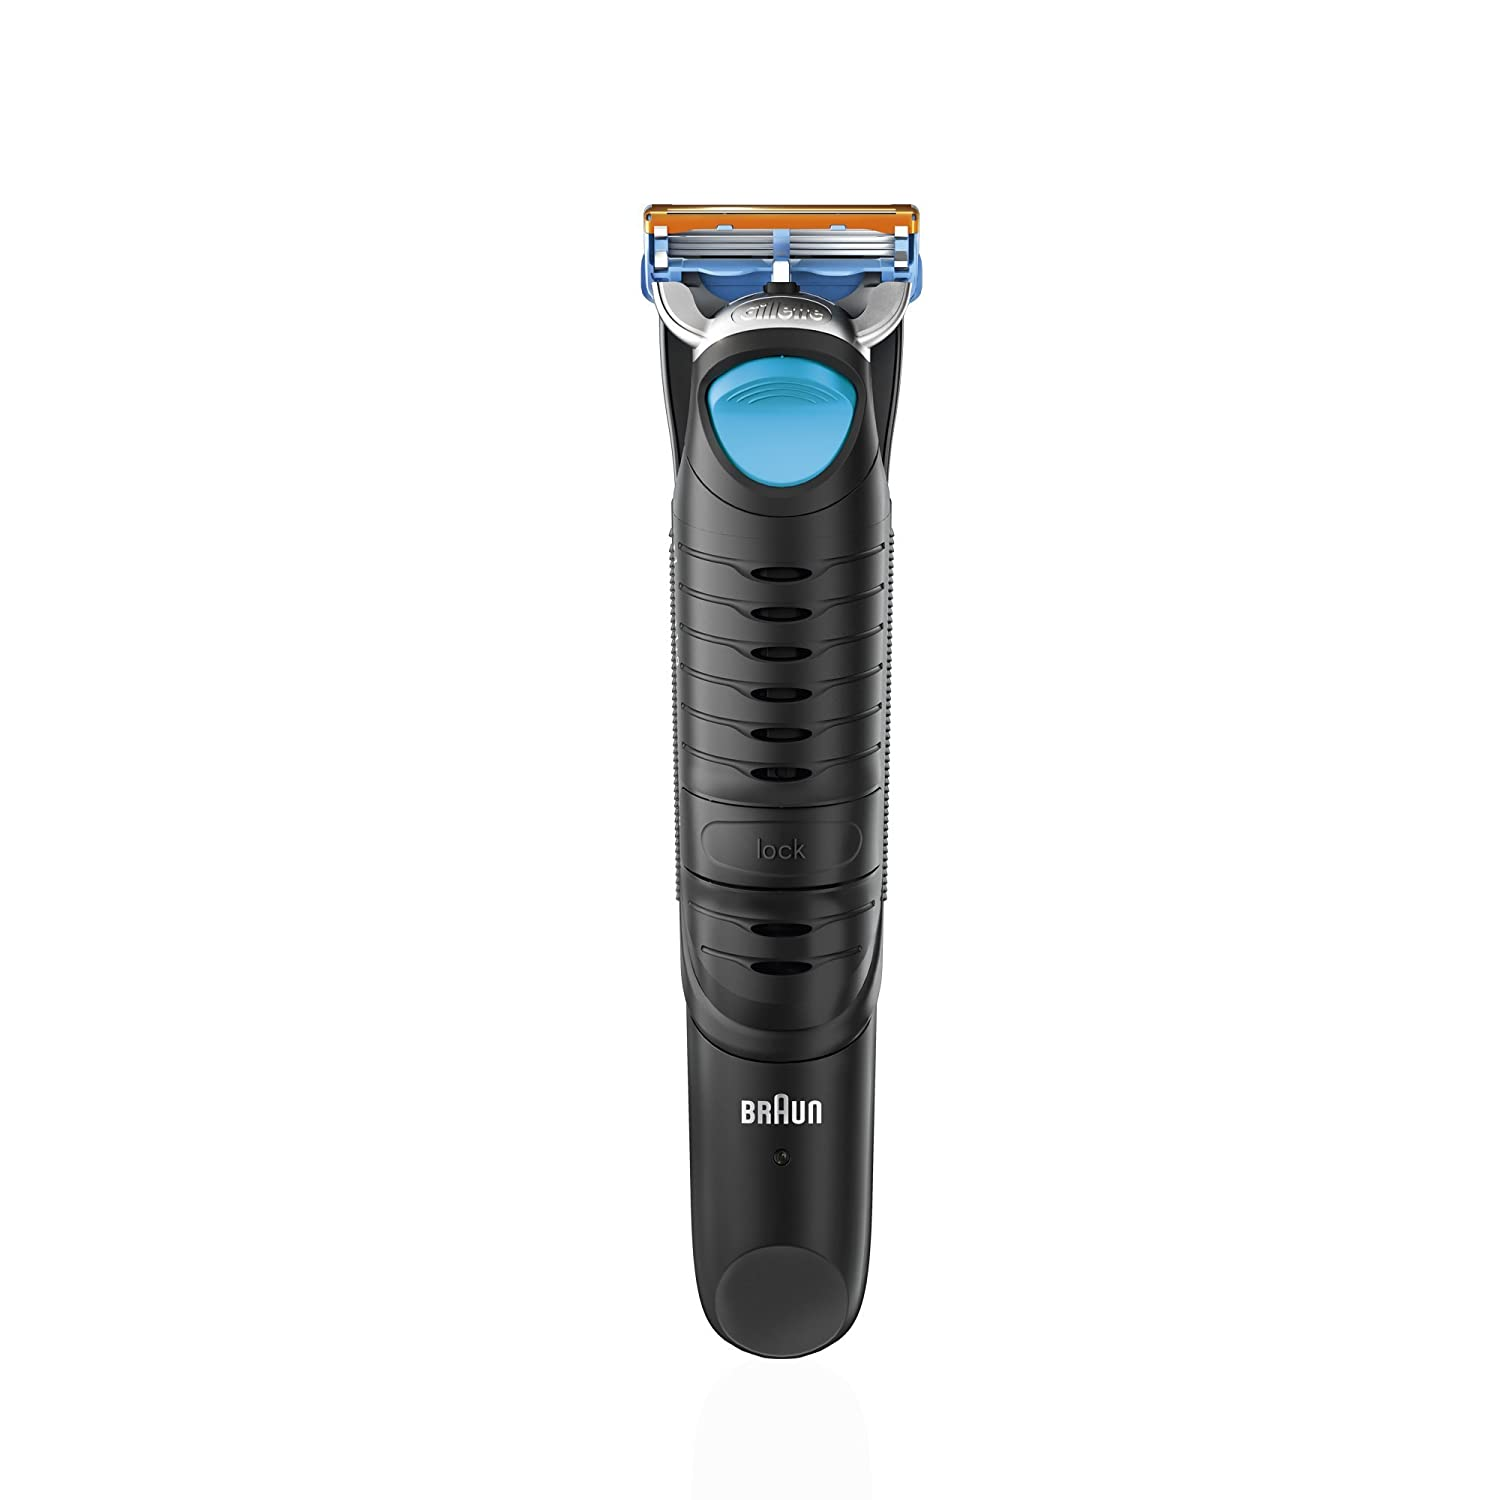 Braun Bodygroomer Body Hair Trimmer and Shaver BG5010 Black